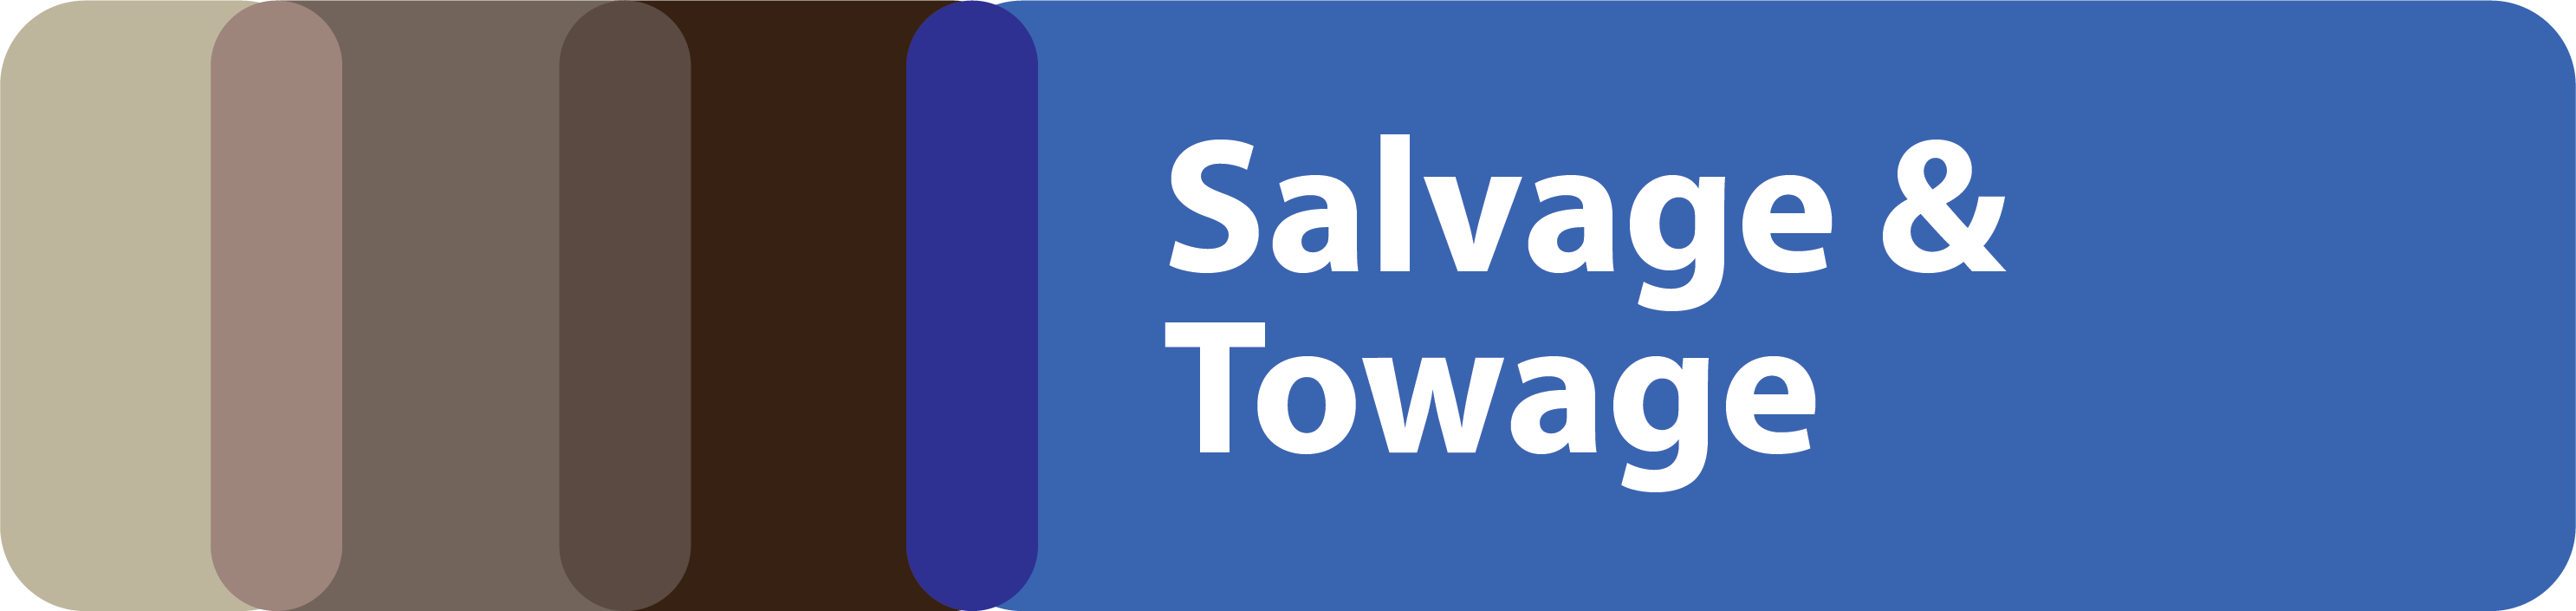 Salvage & Towage